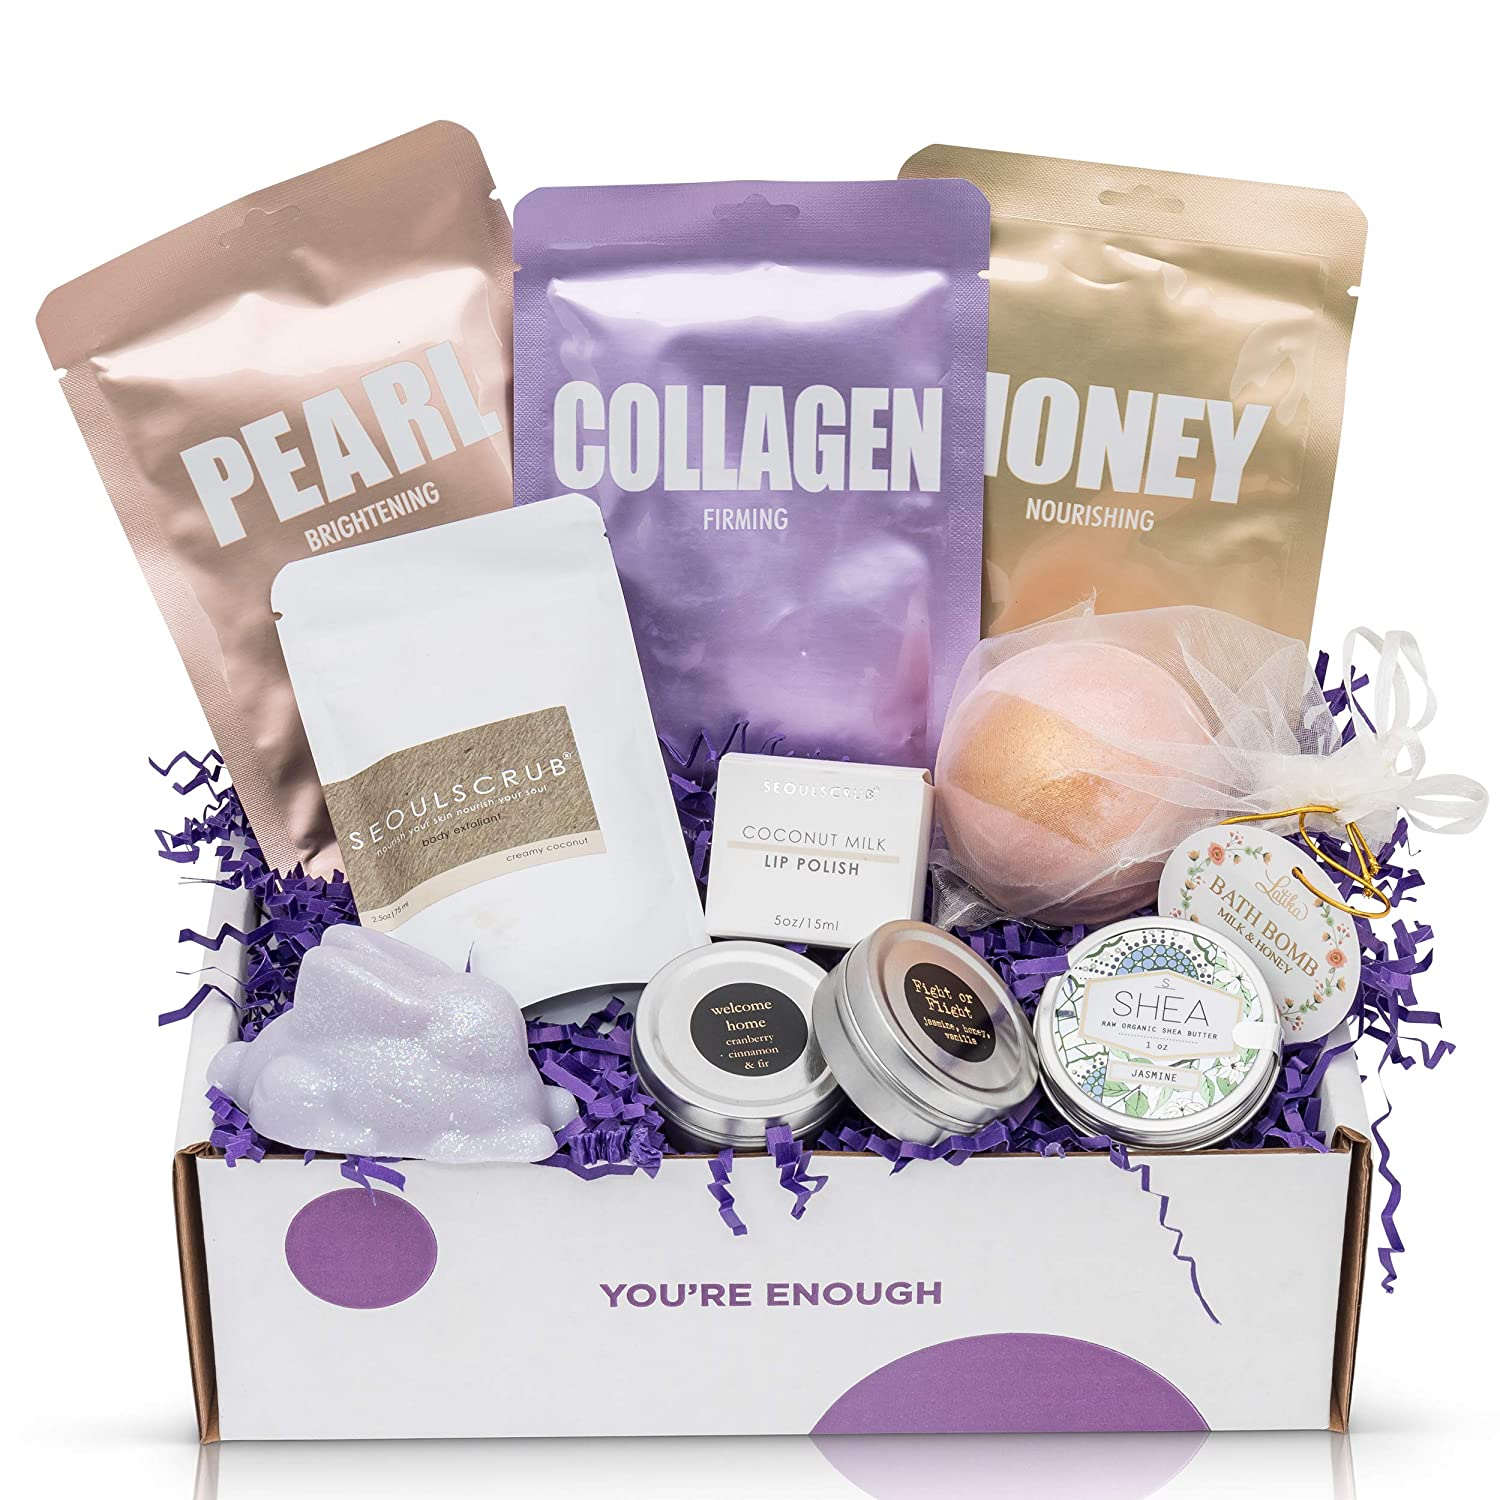 cruelty-free bath, body and spa gift box with shea butter, scented candles and a cool bath bomb